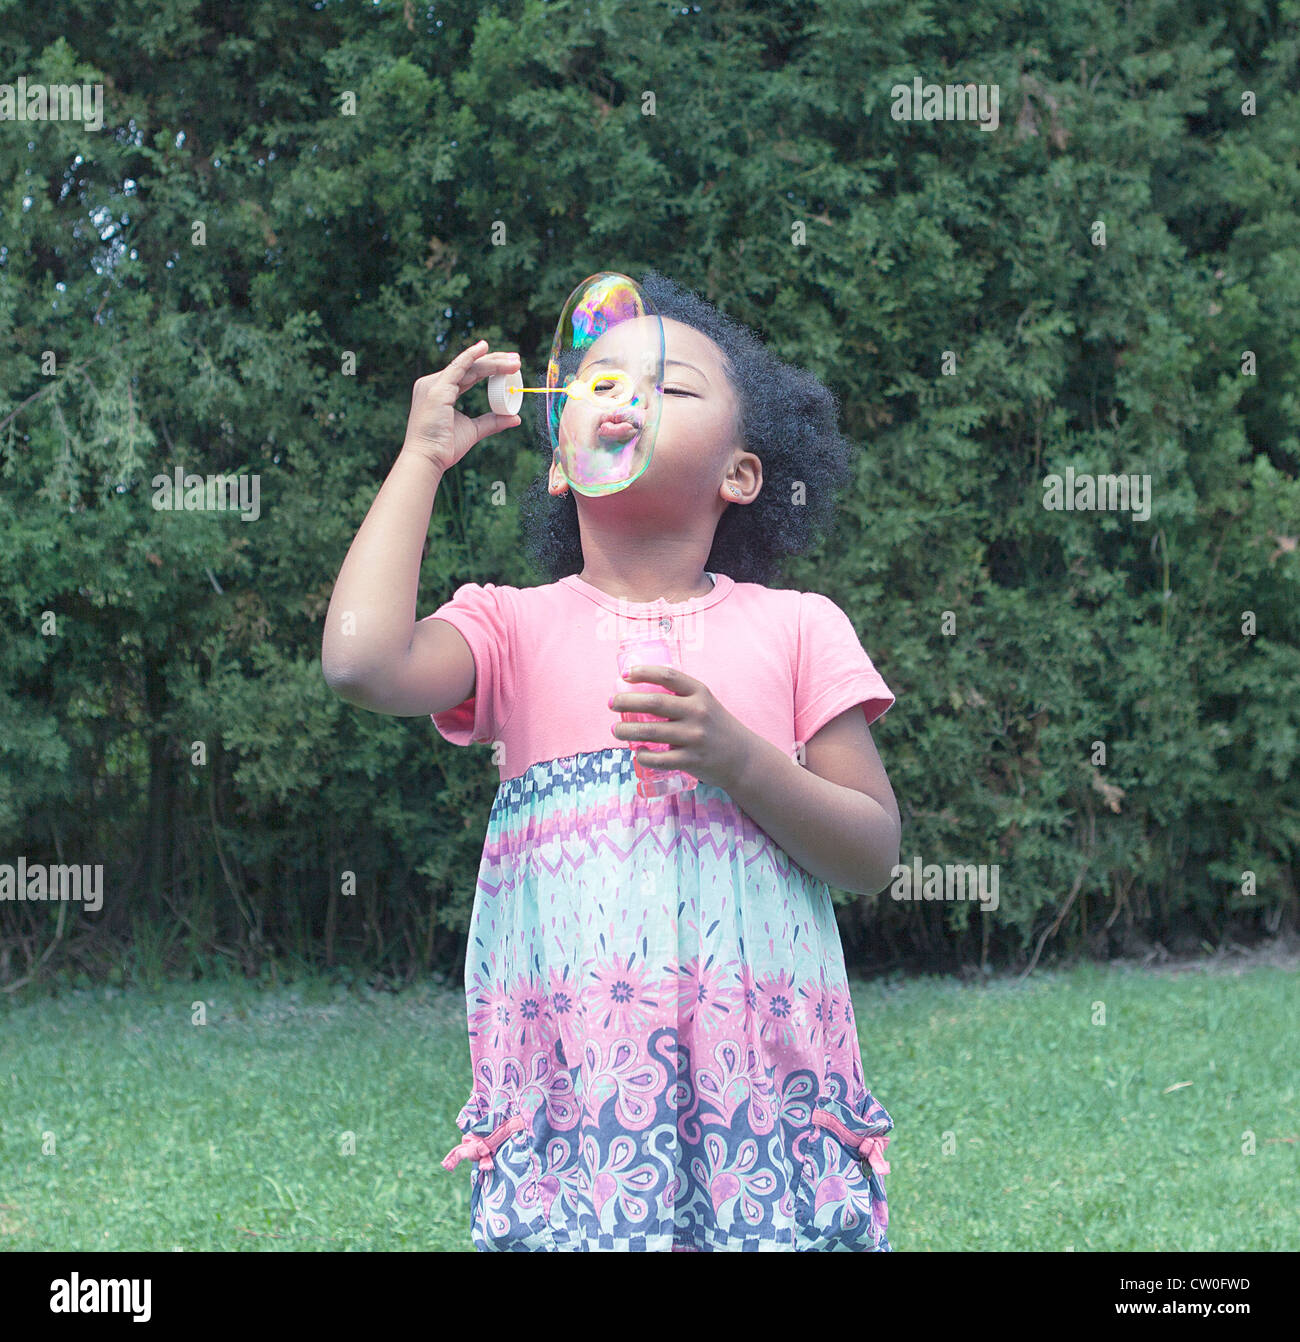 Girl blowing bubbles outdoors Photo Stock